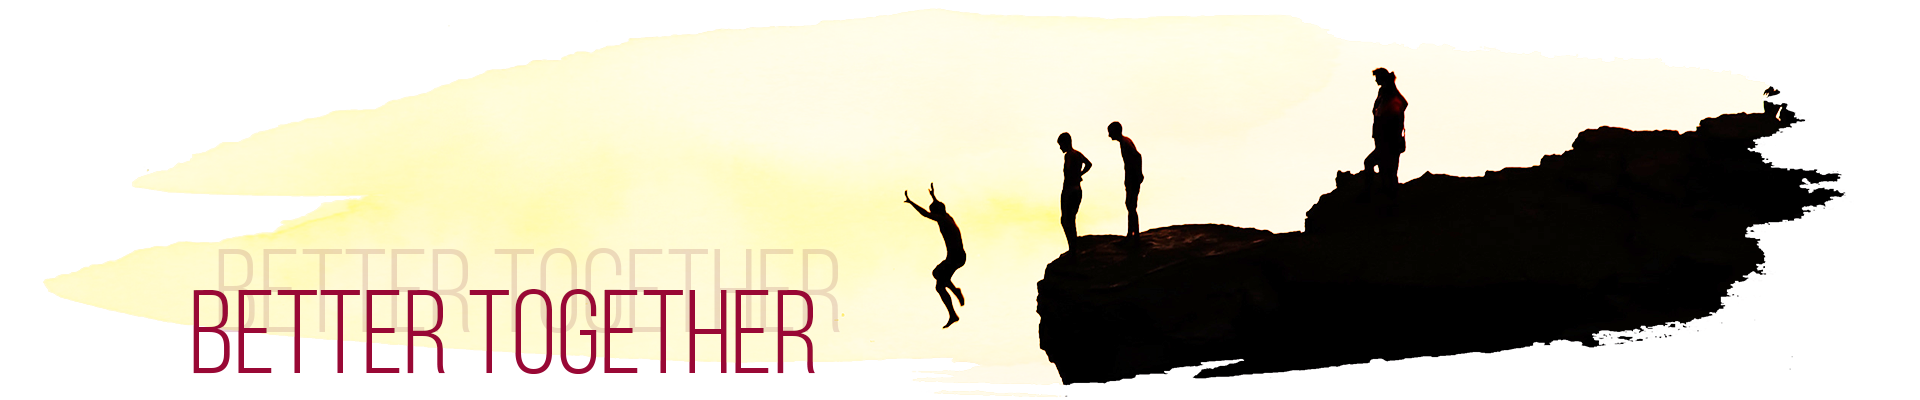 Cliff jump png. Partake in exciting jumping